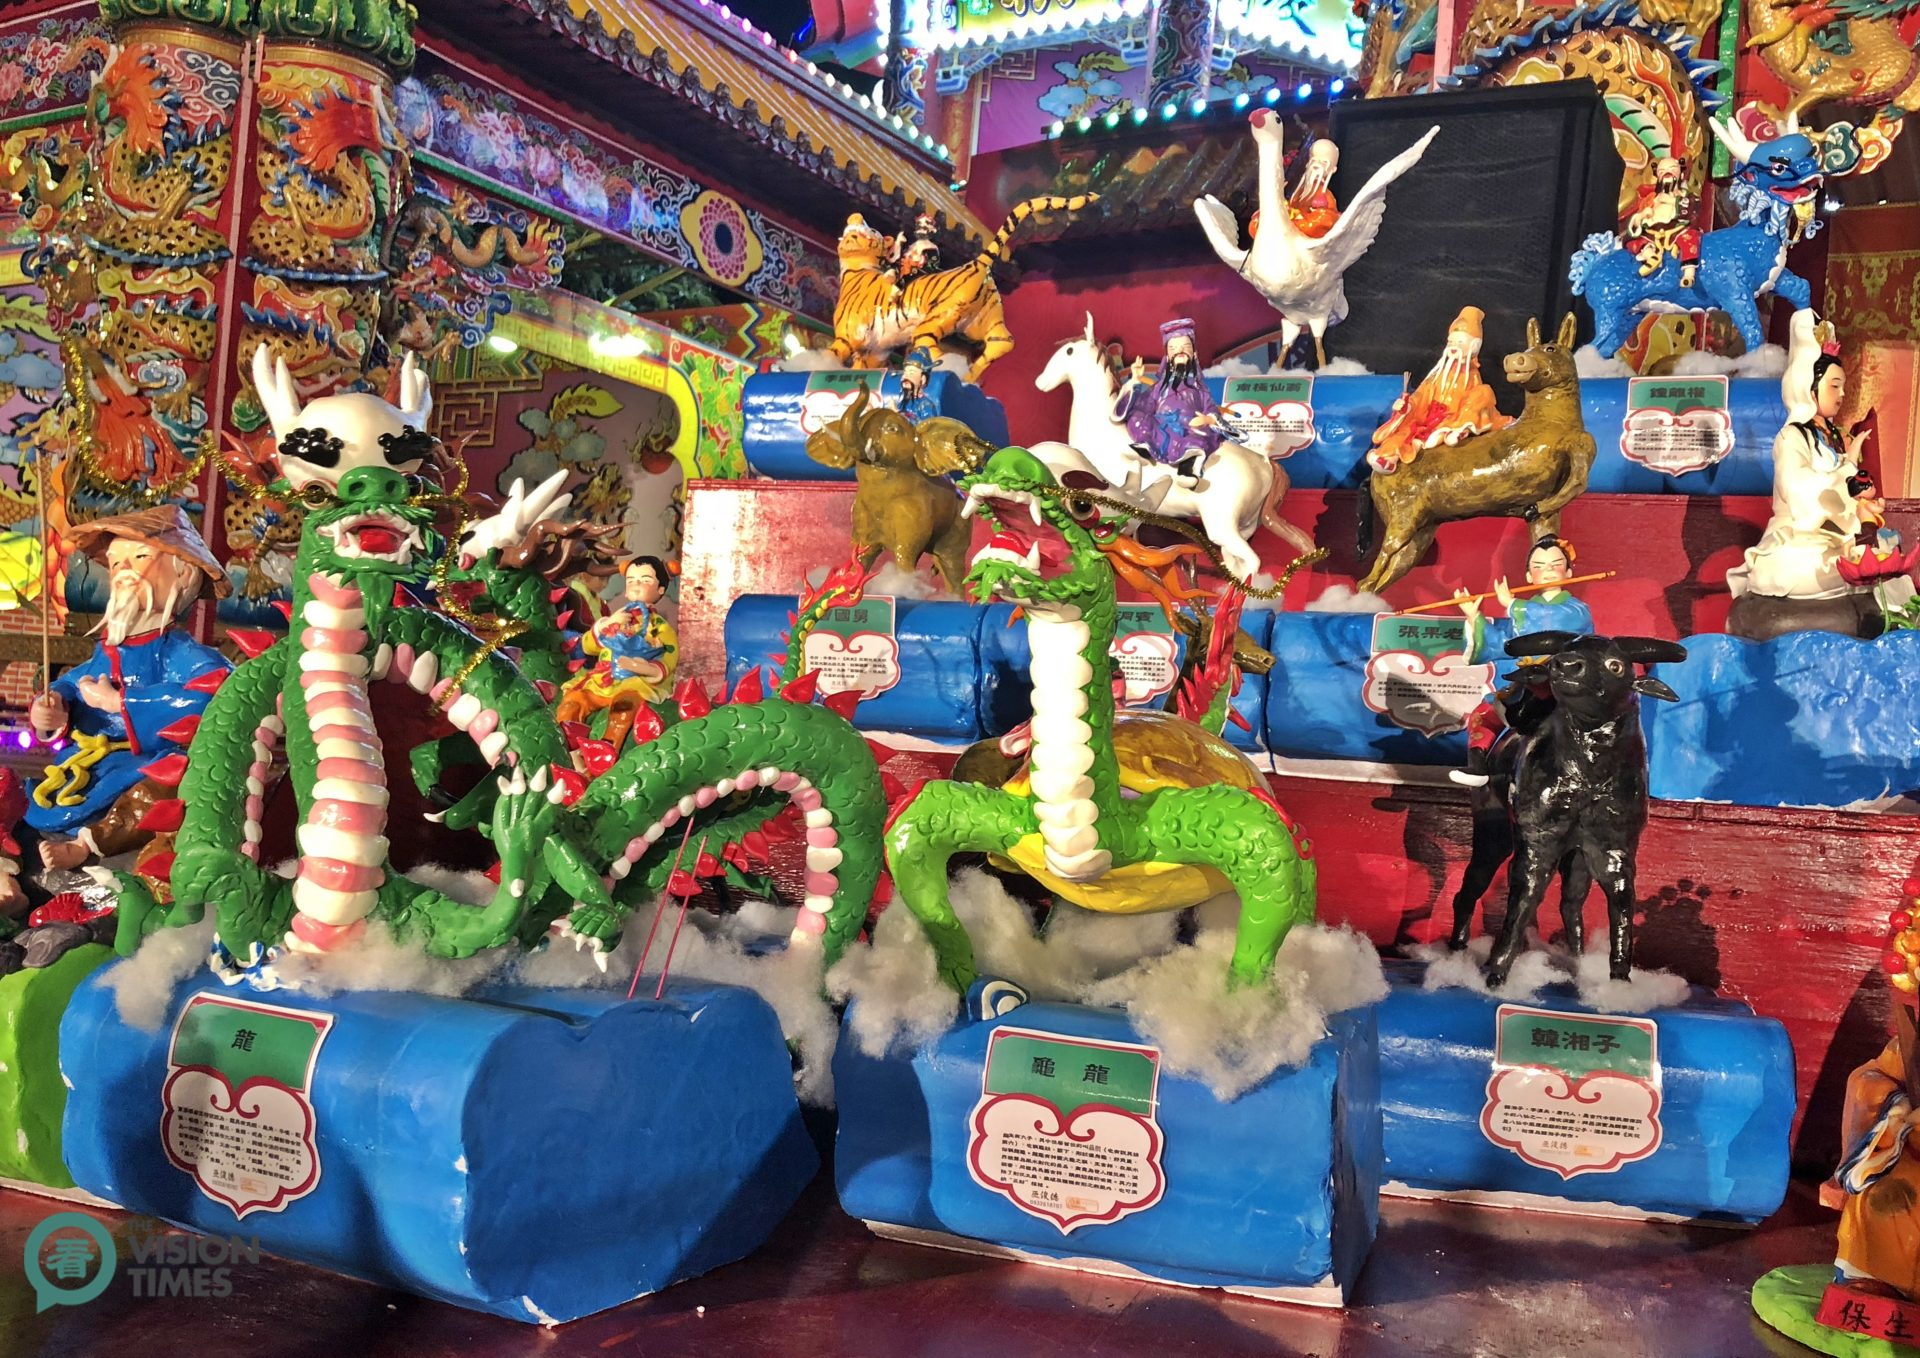 The Main Altar is decorated according to legends for the Grand Pudu (General Salvation普渡) in the Keelung Ghost Festival. (Image: Billy Shyu / Vision Times)